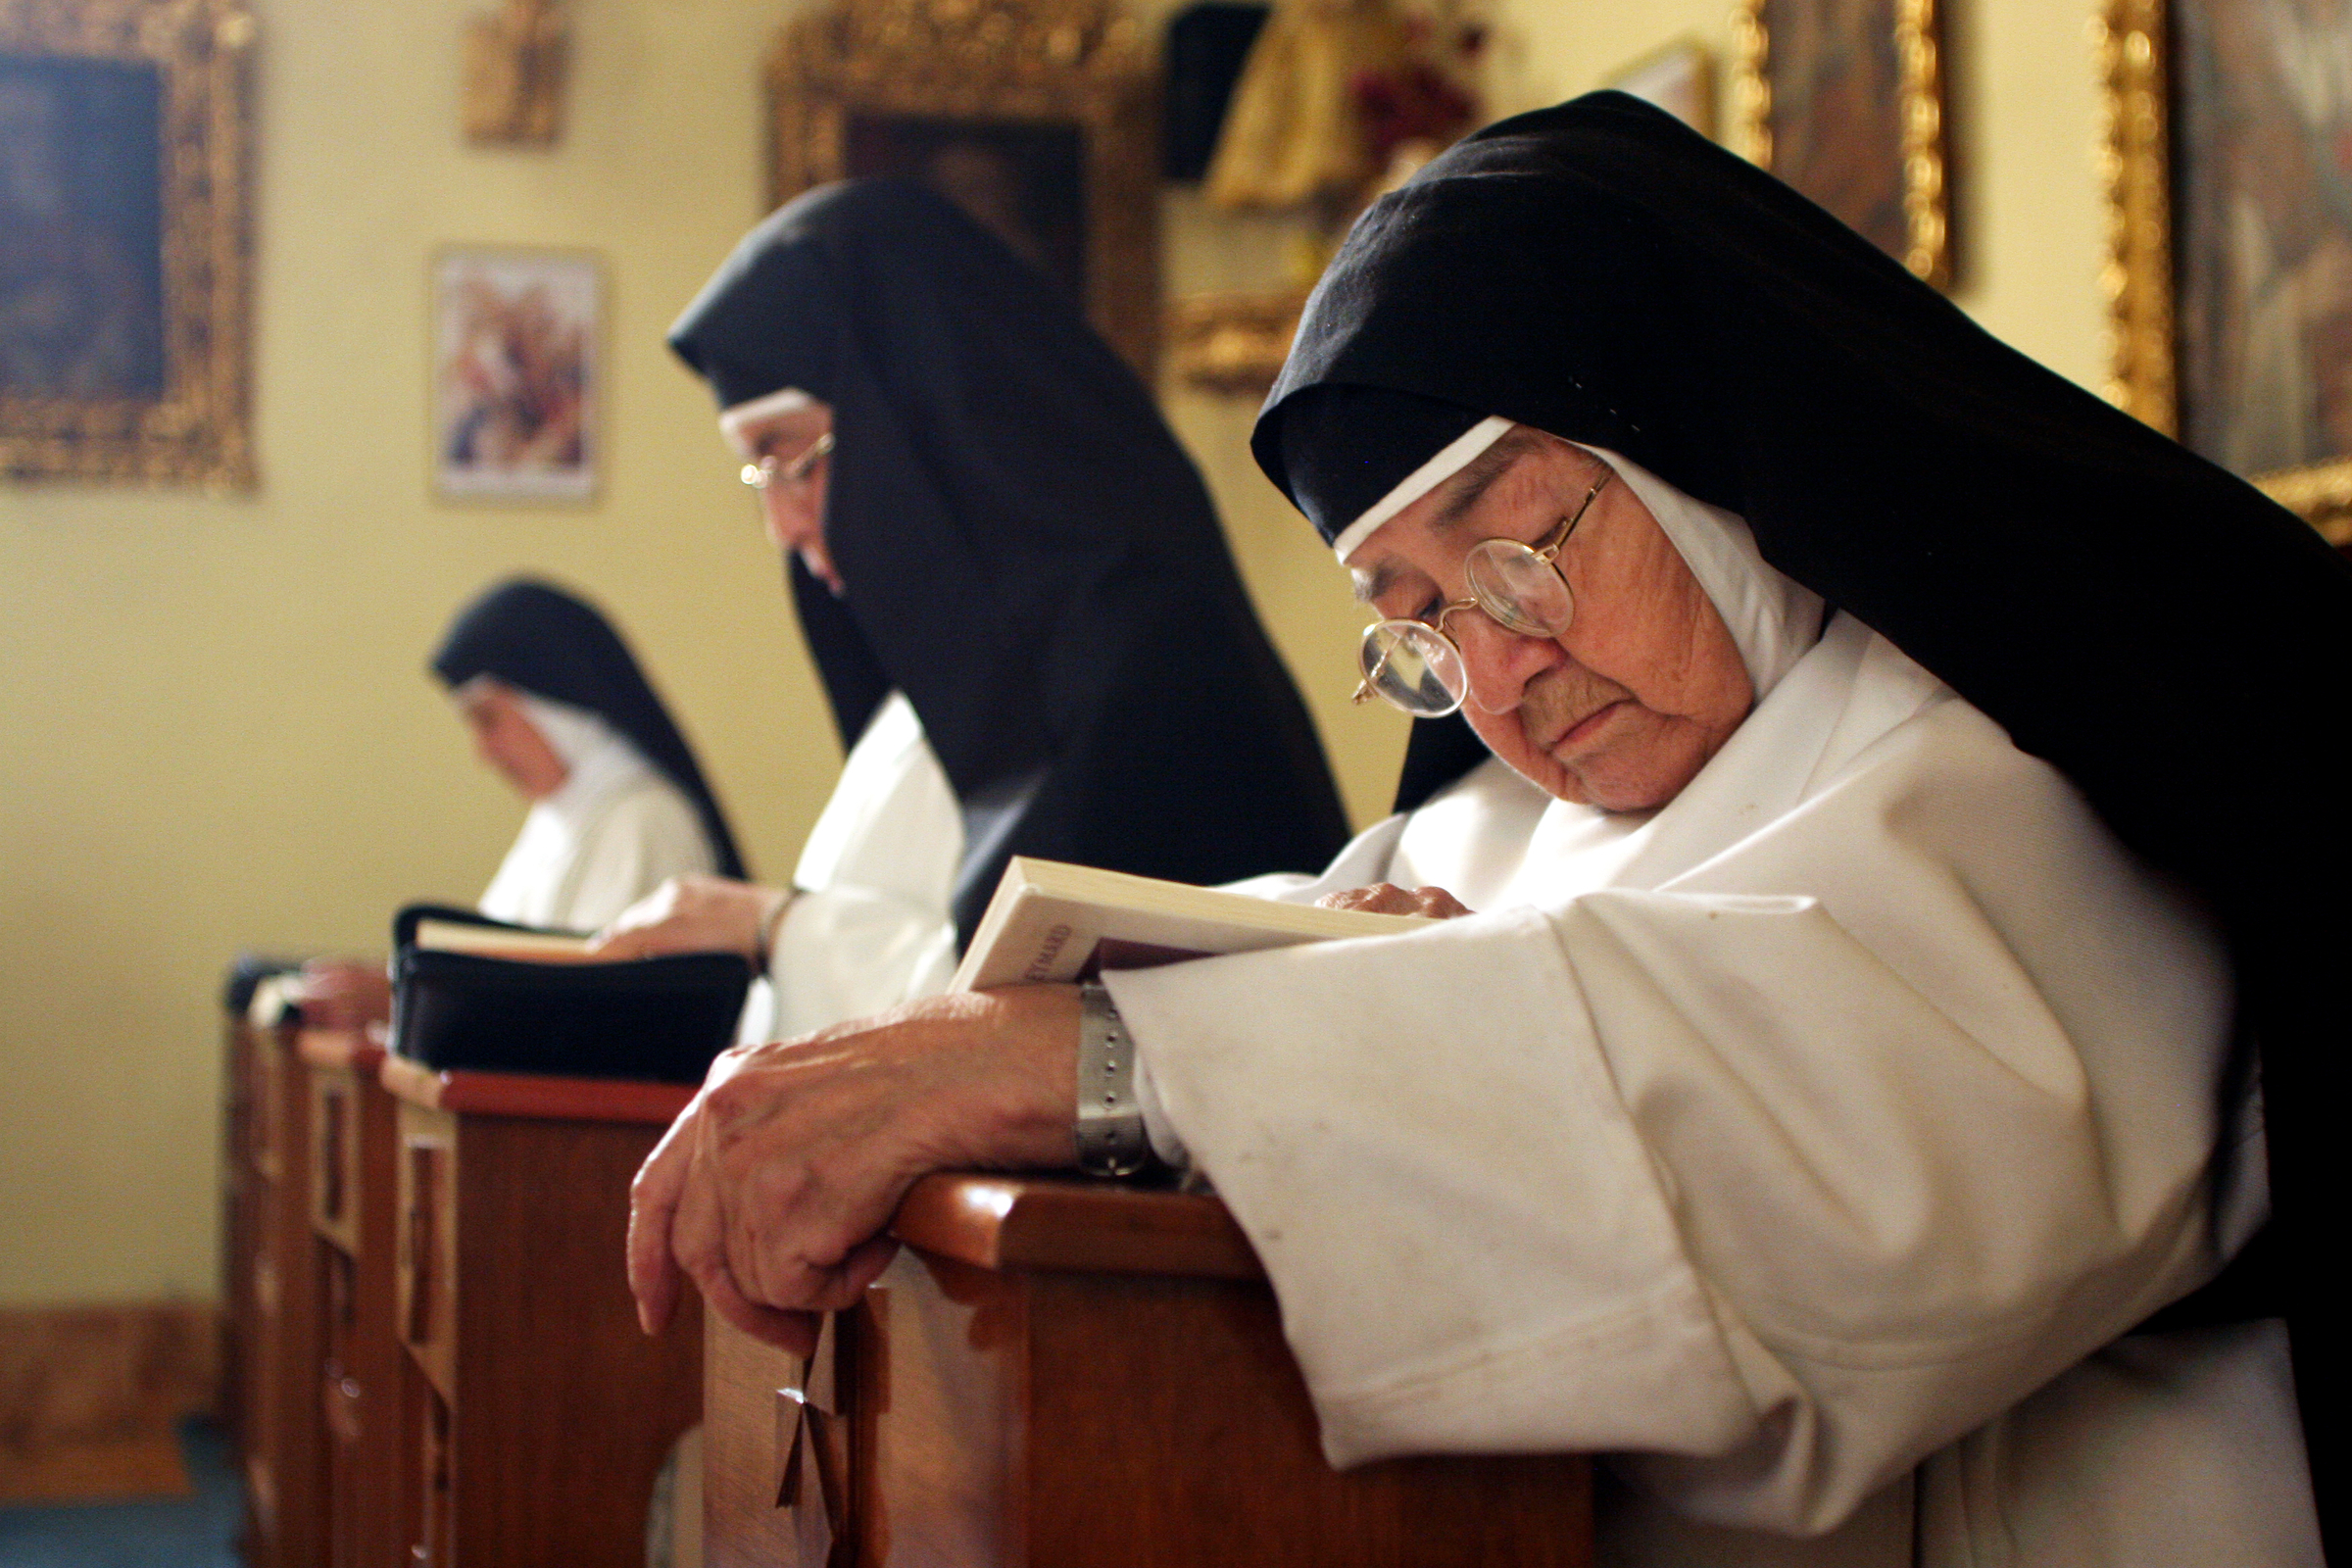 Sister Consuelo de Jesus concentrates on her Bible study, or Lexio Divino, during silent prayer in Santa Catalina Monastery's chapel. The nuns gather five times a day for prayer, the methods of which vary from singing, to chanting, to reciting the rosary.